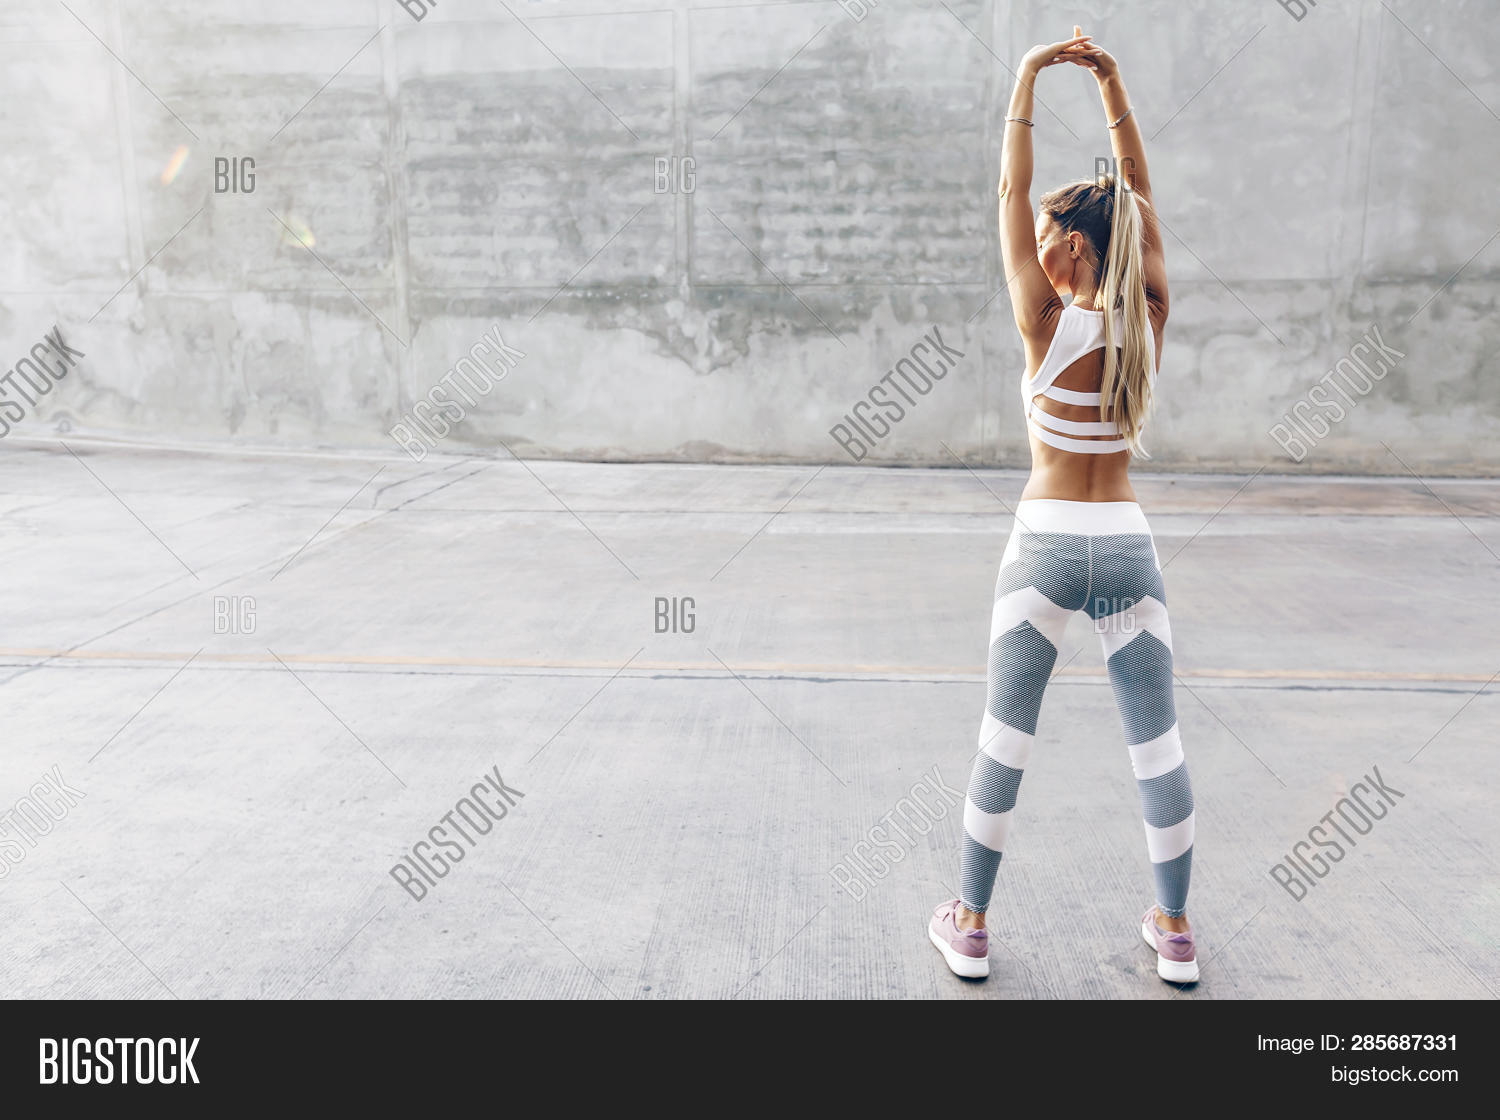 Fitness woman in sportswear doing stretching exercise on the city street over gray concrete backgrou